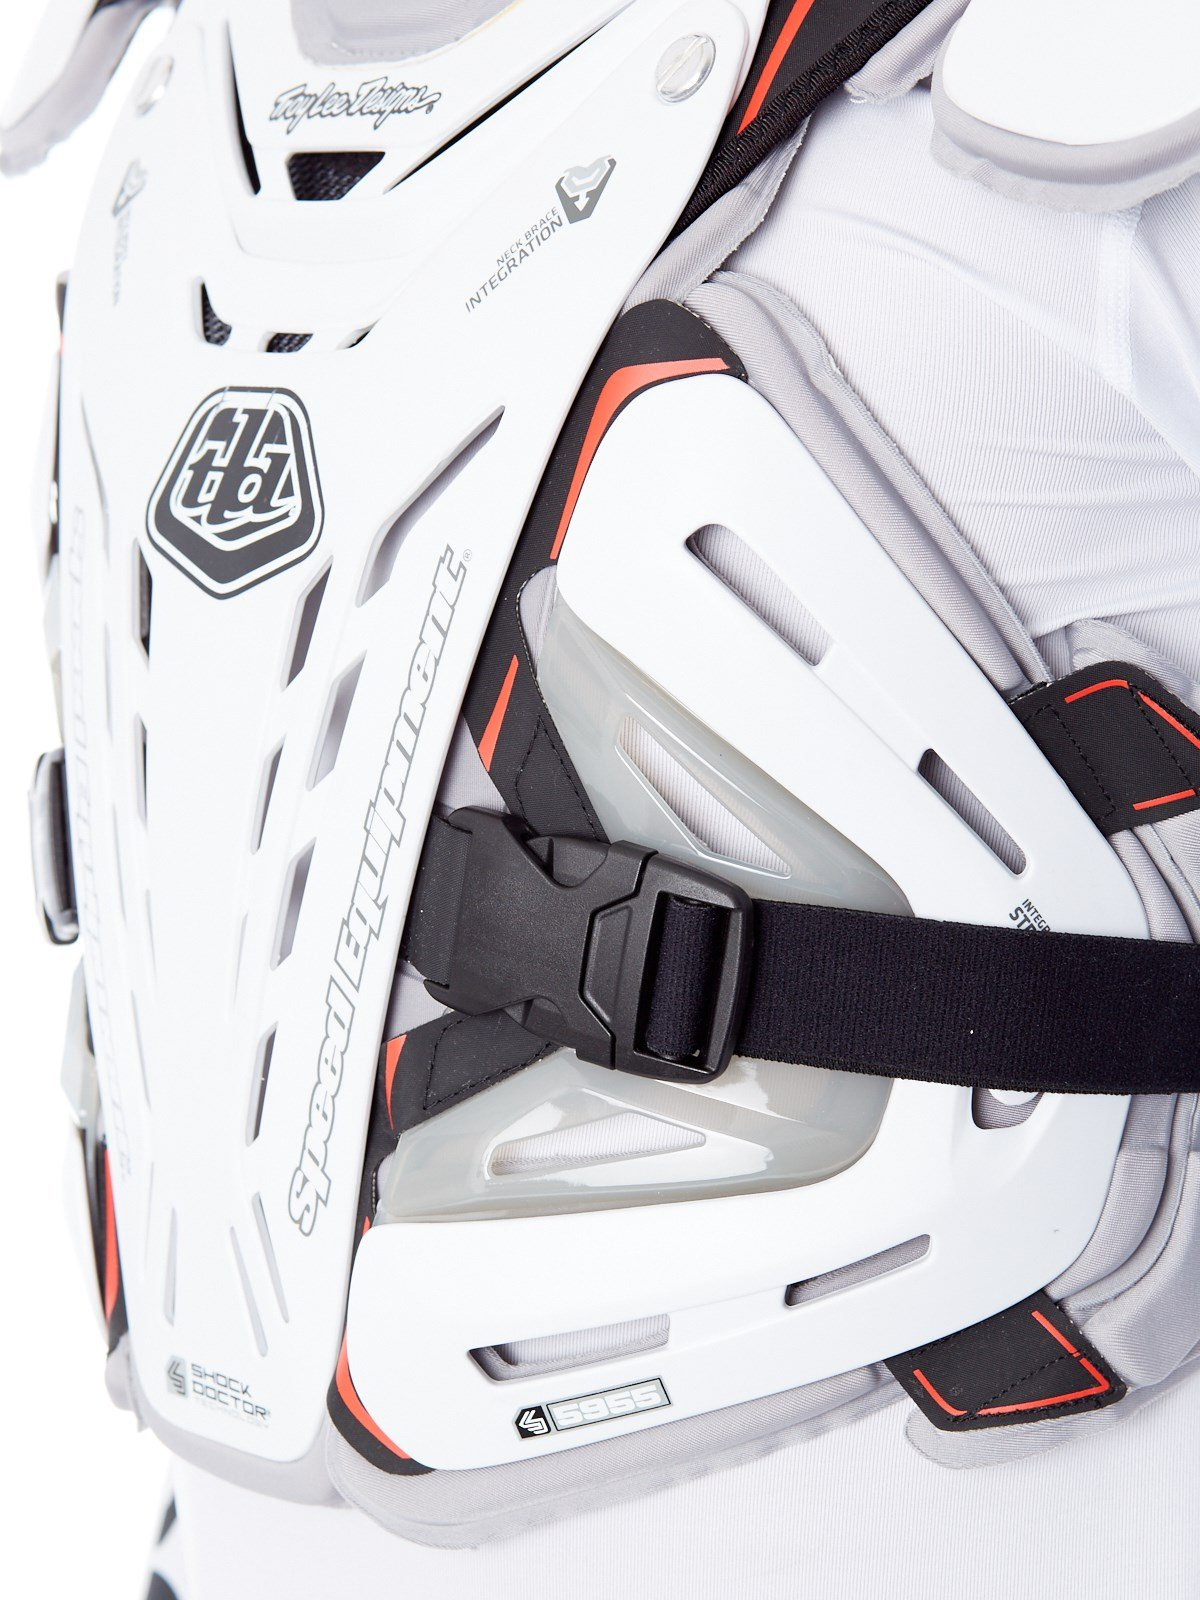 Troy Lee Designs 5955 Chest Body Guard-White-L by Troy Lee Designs (Image #5)